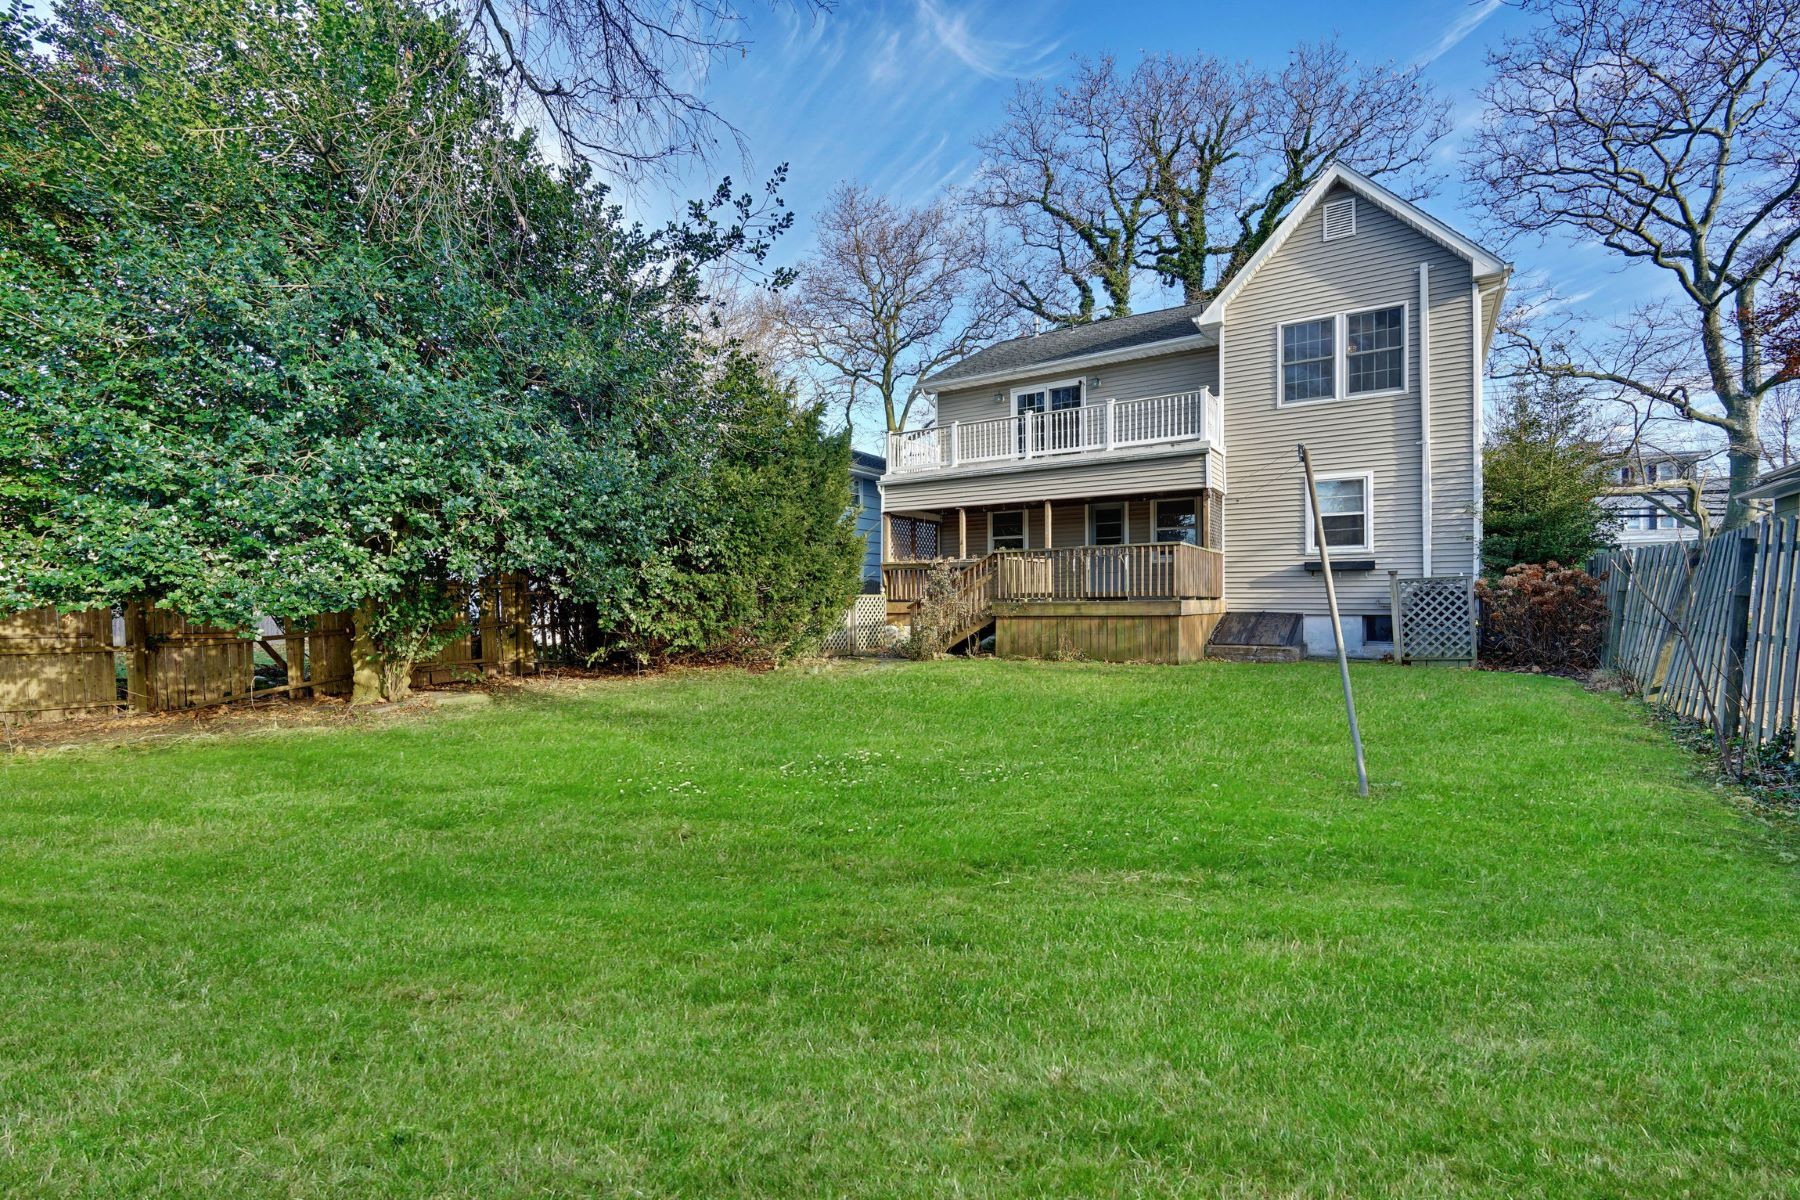 Additional photo for property listing at Centrally Located Between Beach and Town 405 E Main Street, Manasquan, New Jersey 08736 Vereinigte Staaten